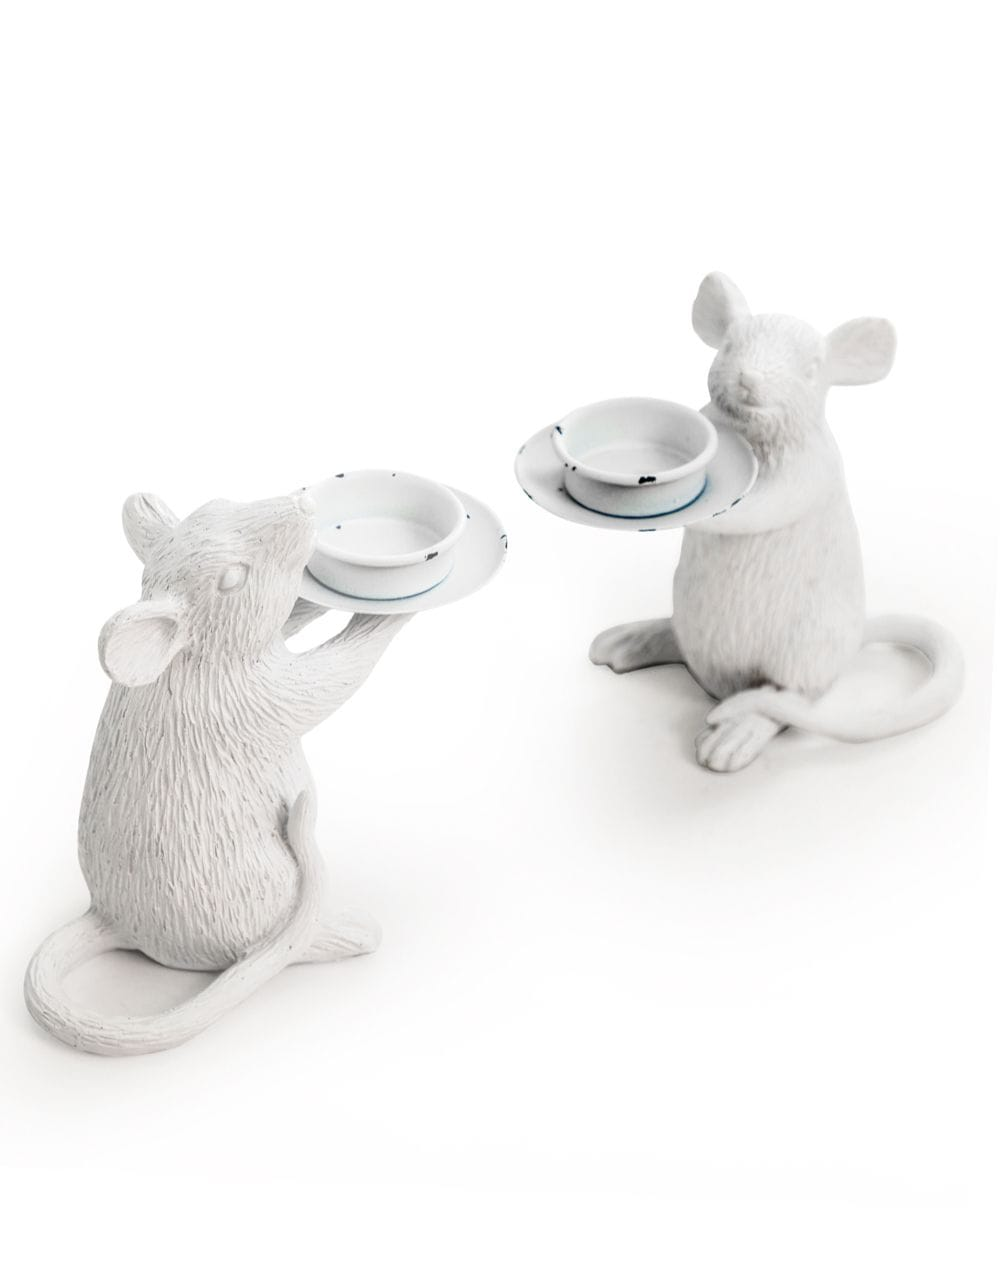 Pair of White Mouse Candle Holders - €49.00 | 15x16.5x8cm